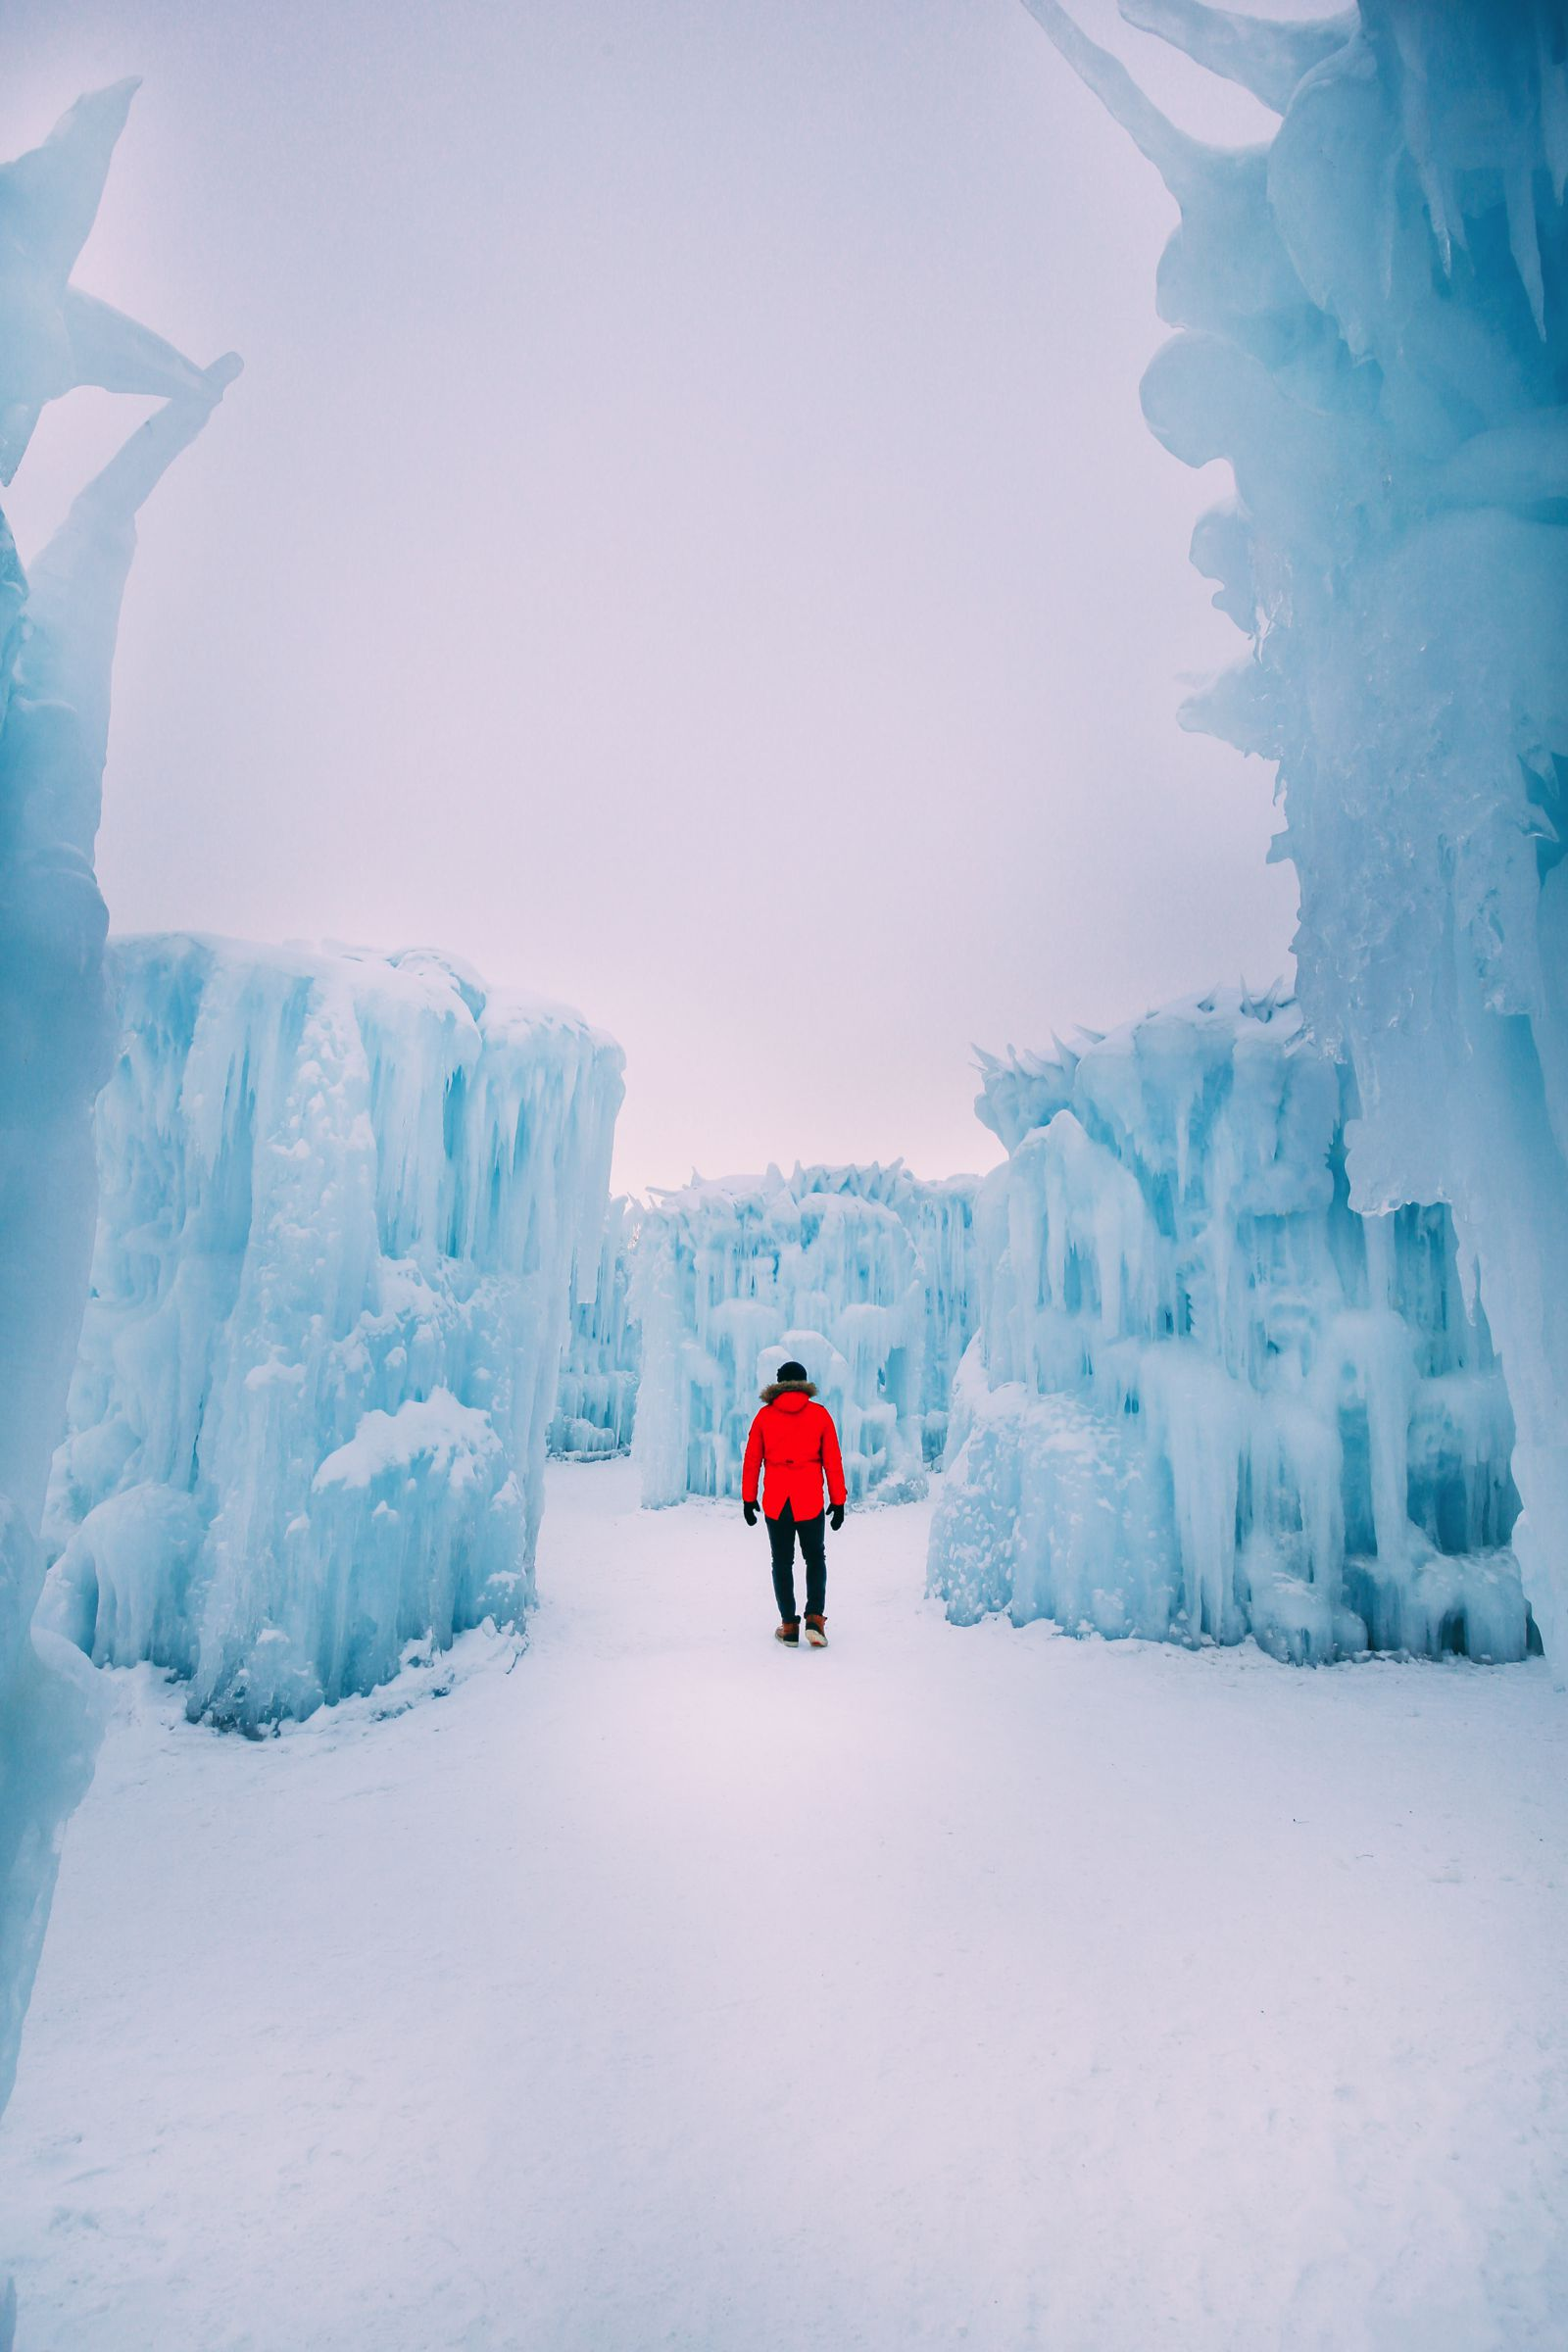 Edmonton City In Alberta Canada - Ice Castles And Travel Photos (9)